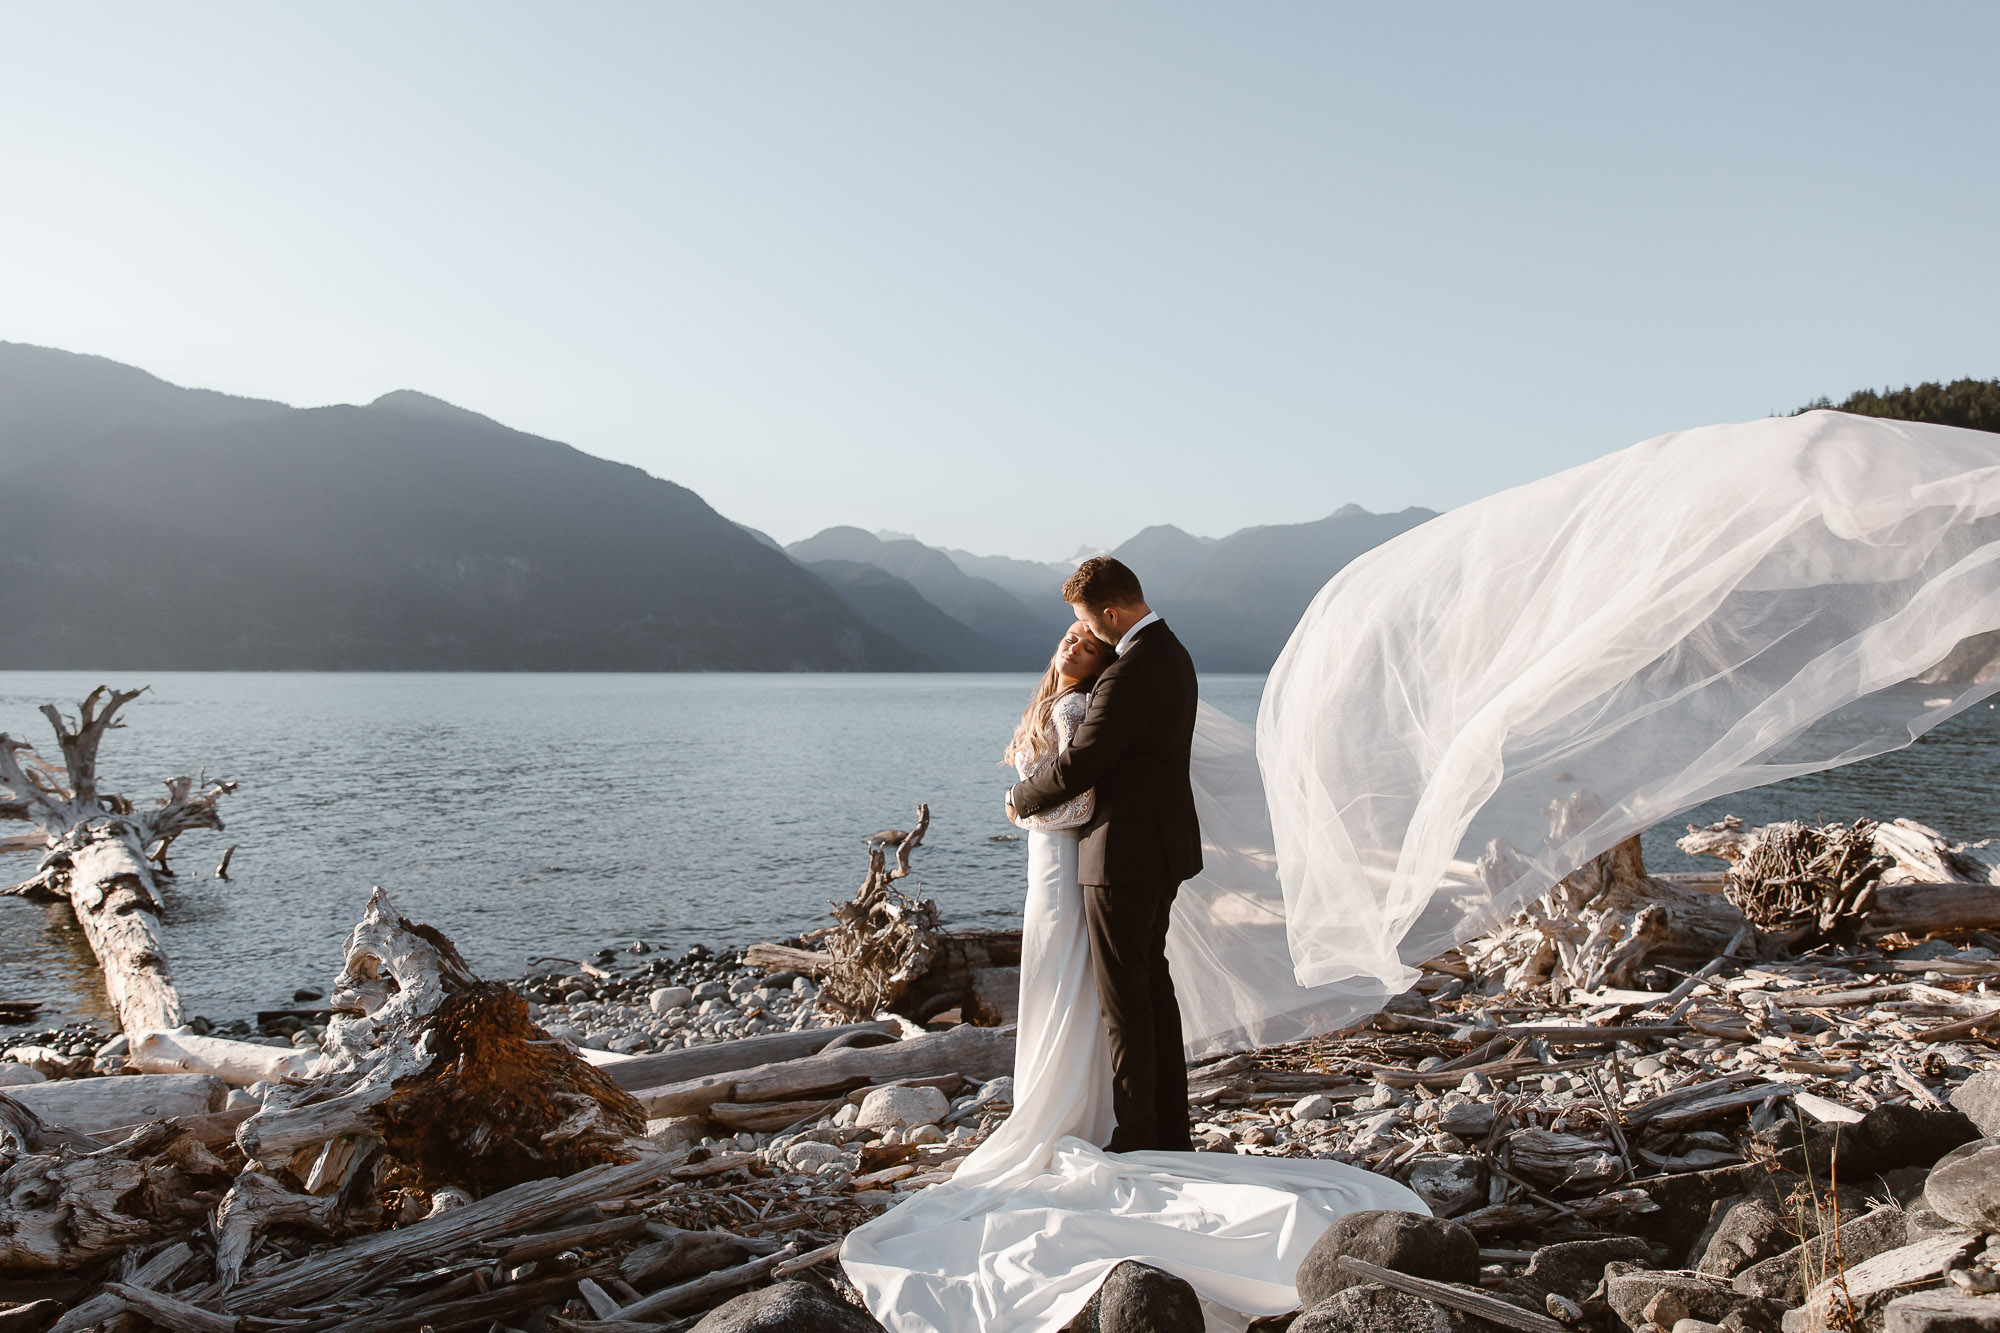 Bride and groom posing at the beach with stunting mountains view for their wedding photos